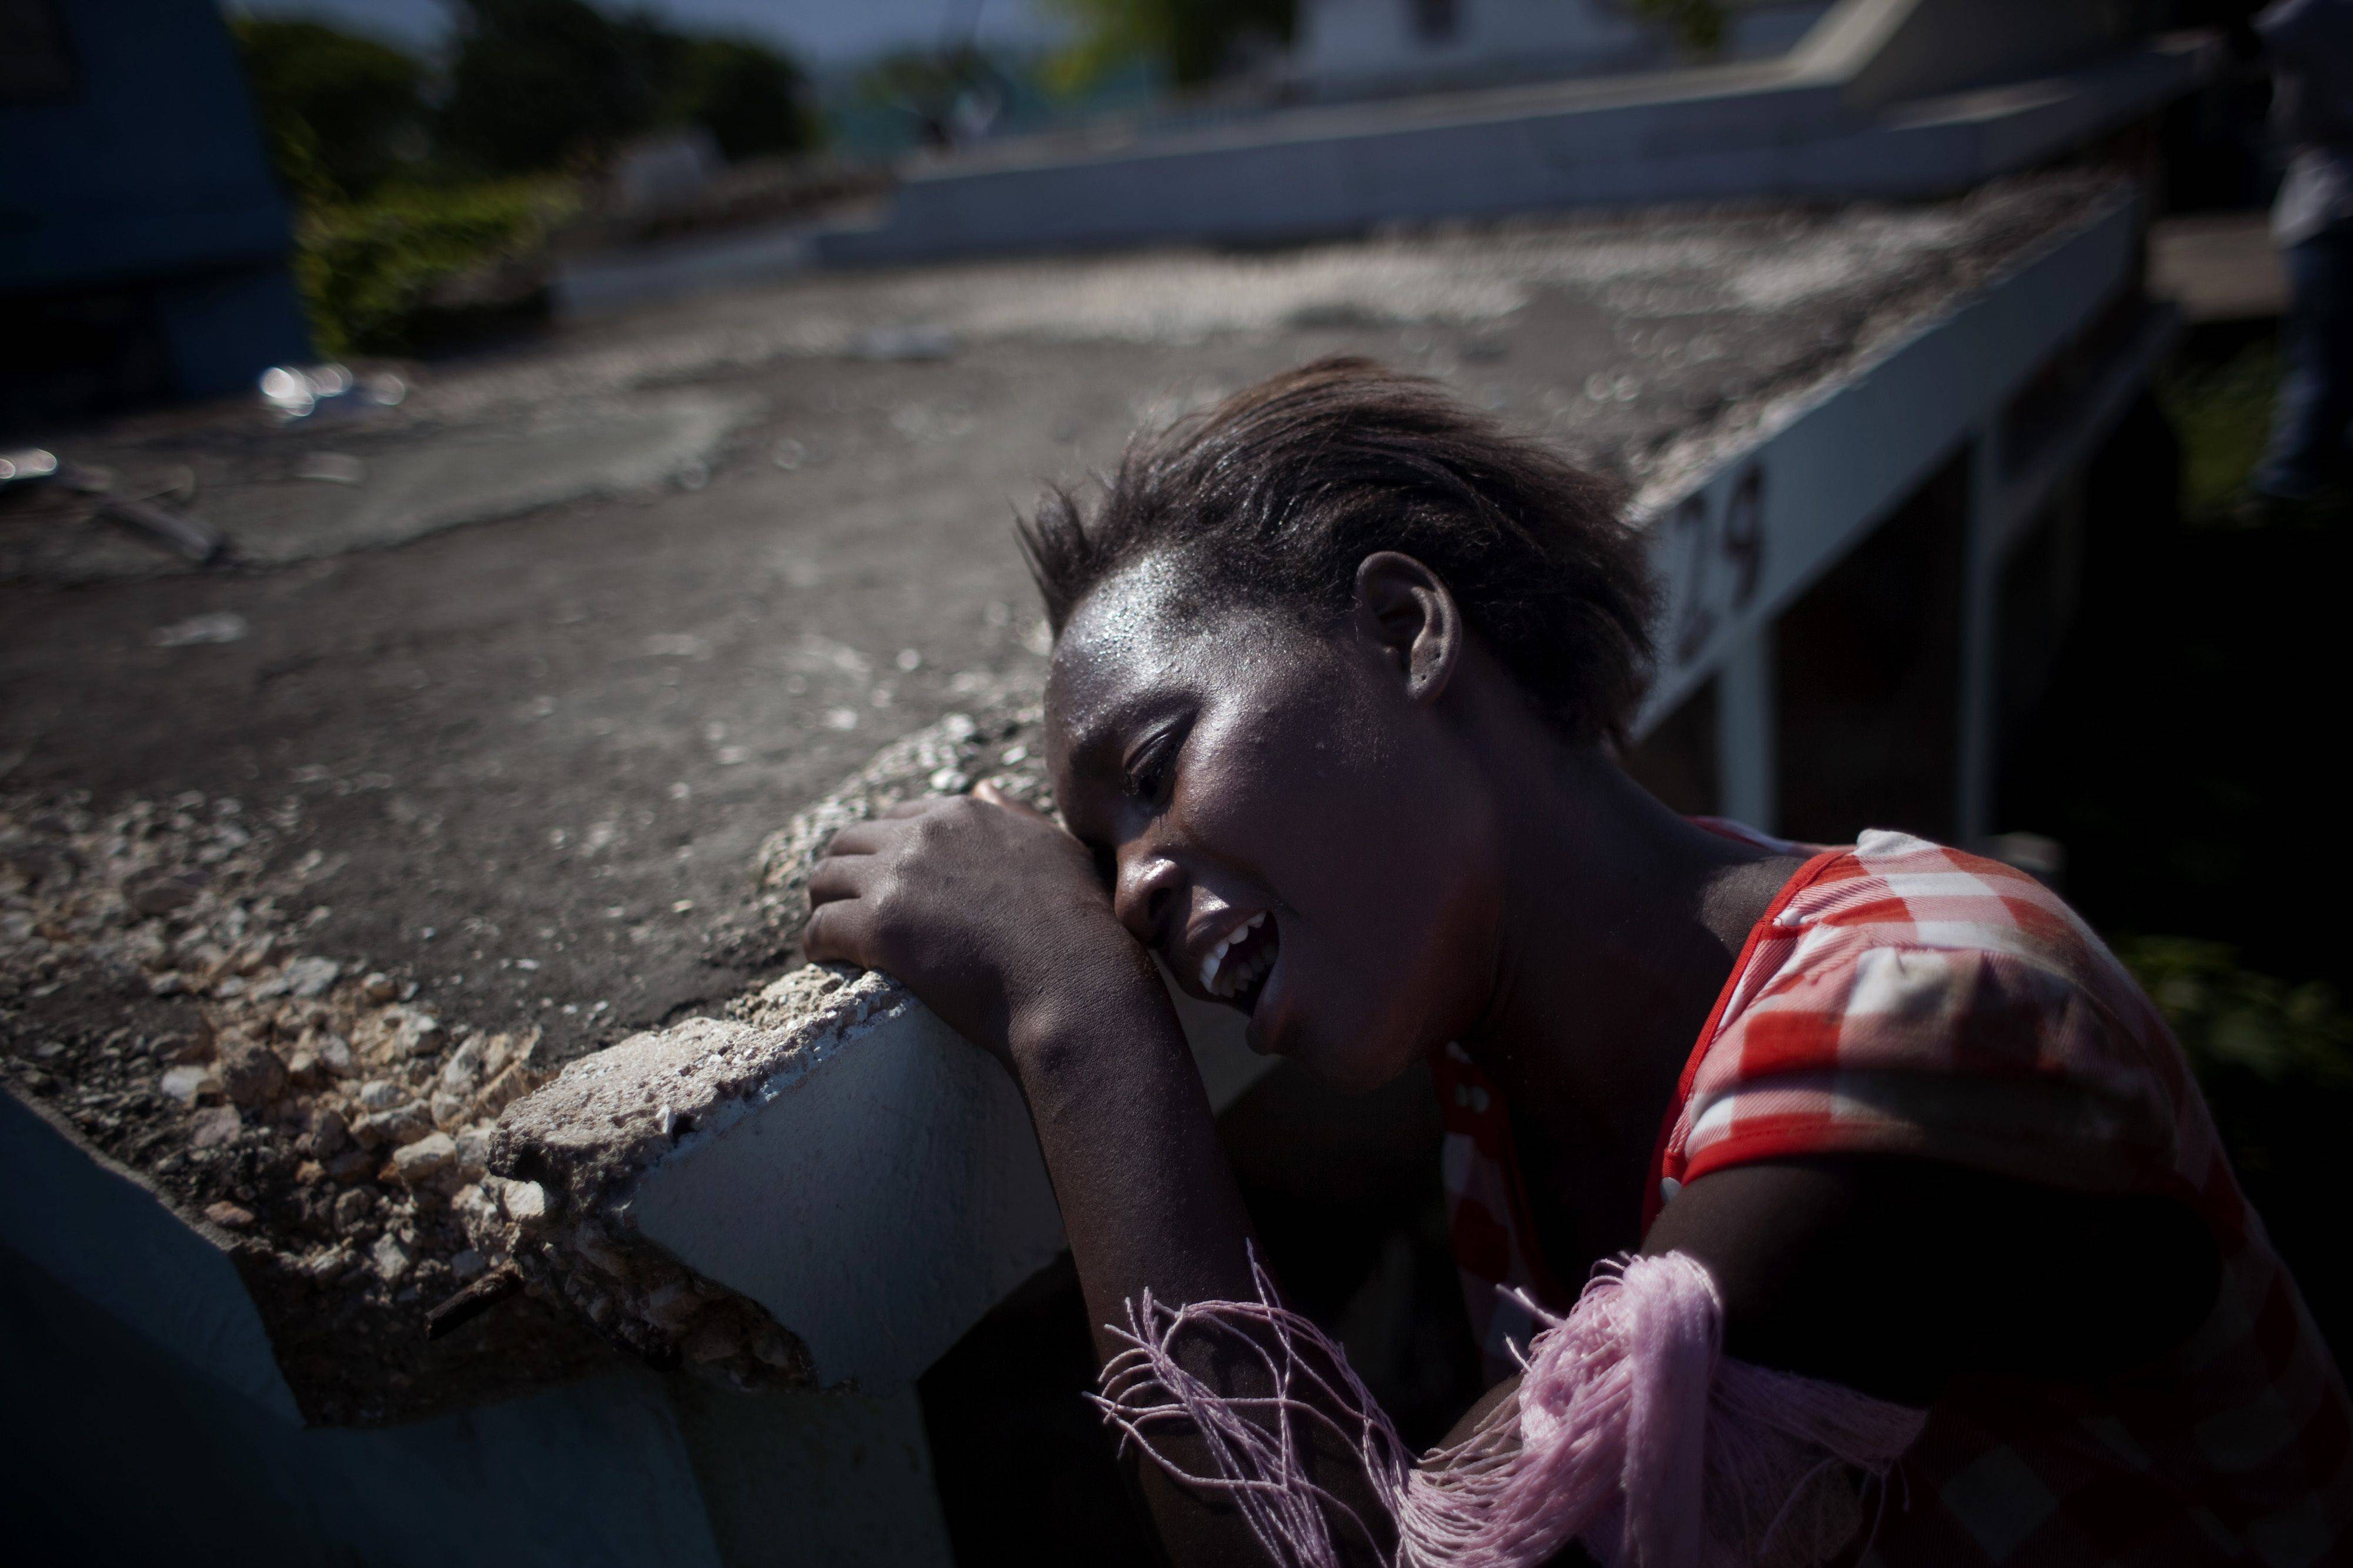 A relative of Monitha Silney, 12, who died of cholera, mourns during her burial at the cemetery Sunday in the slum of Cite Soleil in Port-au-Prince, Haiti. Thousands of people have been hospitalized for cholera across Haiti with symptoms including serious diarrhea, vomiting and fever and hundreds have died.